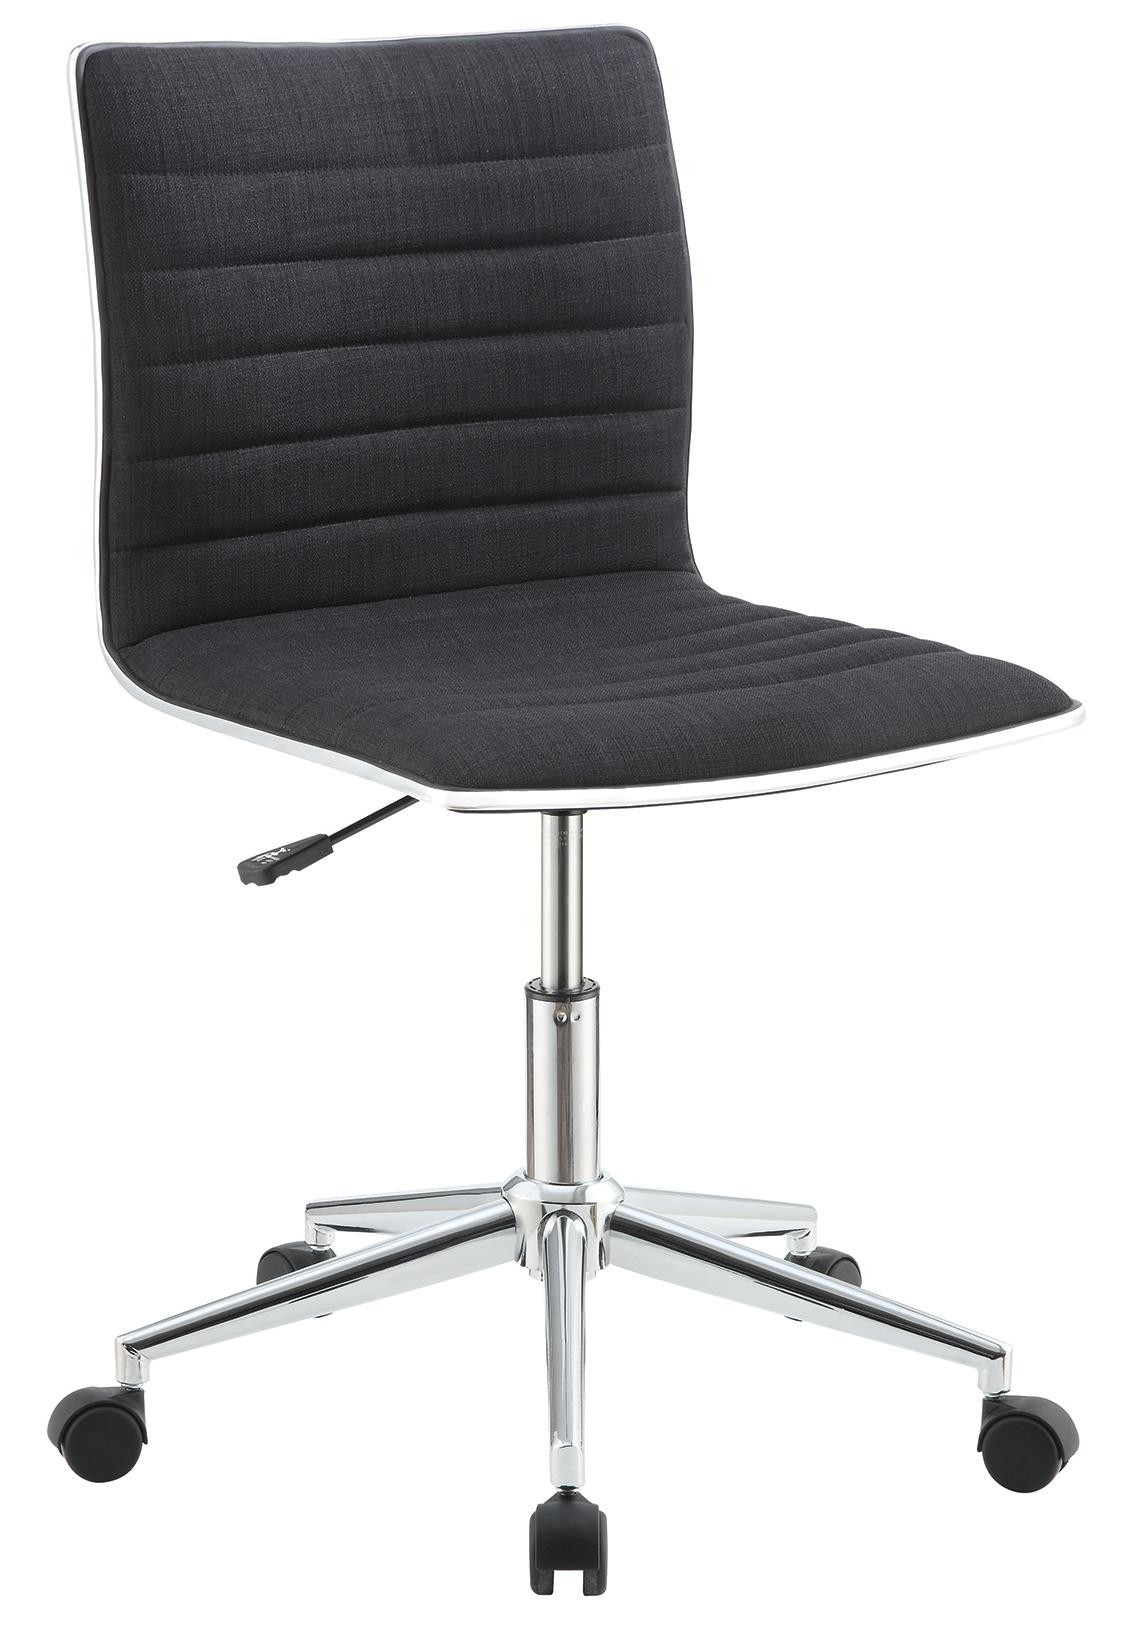 Chrome Base Office Chair w/ Black Fabric Seat & Back